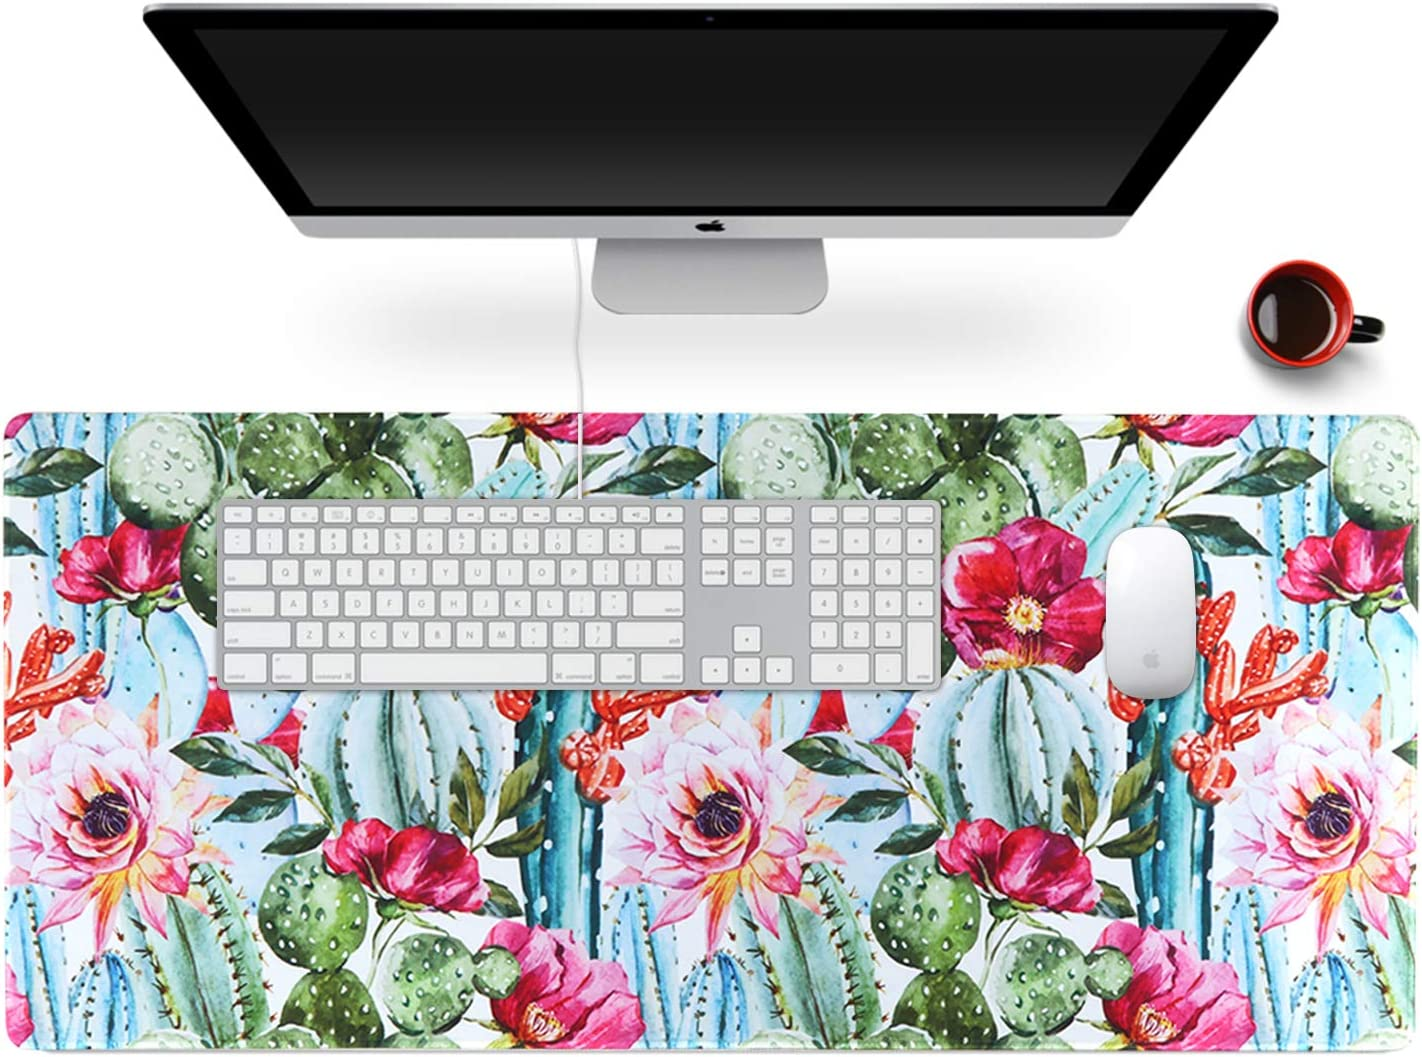 """Anyshock Desk Mat, Extended Gaming Mouse Pad 35.4"""" x 15.7"""" XXL Keyboard Laptop Mousepad with Stitched Edges Non Slip Base, Water-Resistant Computer Desk Pad for Office and Home (Cactus)"""